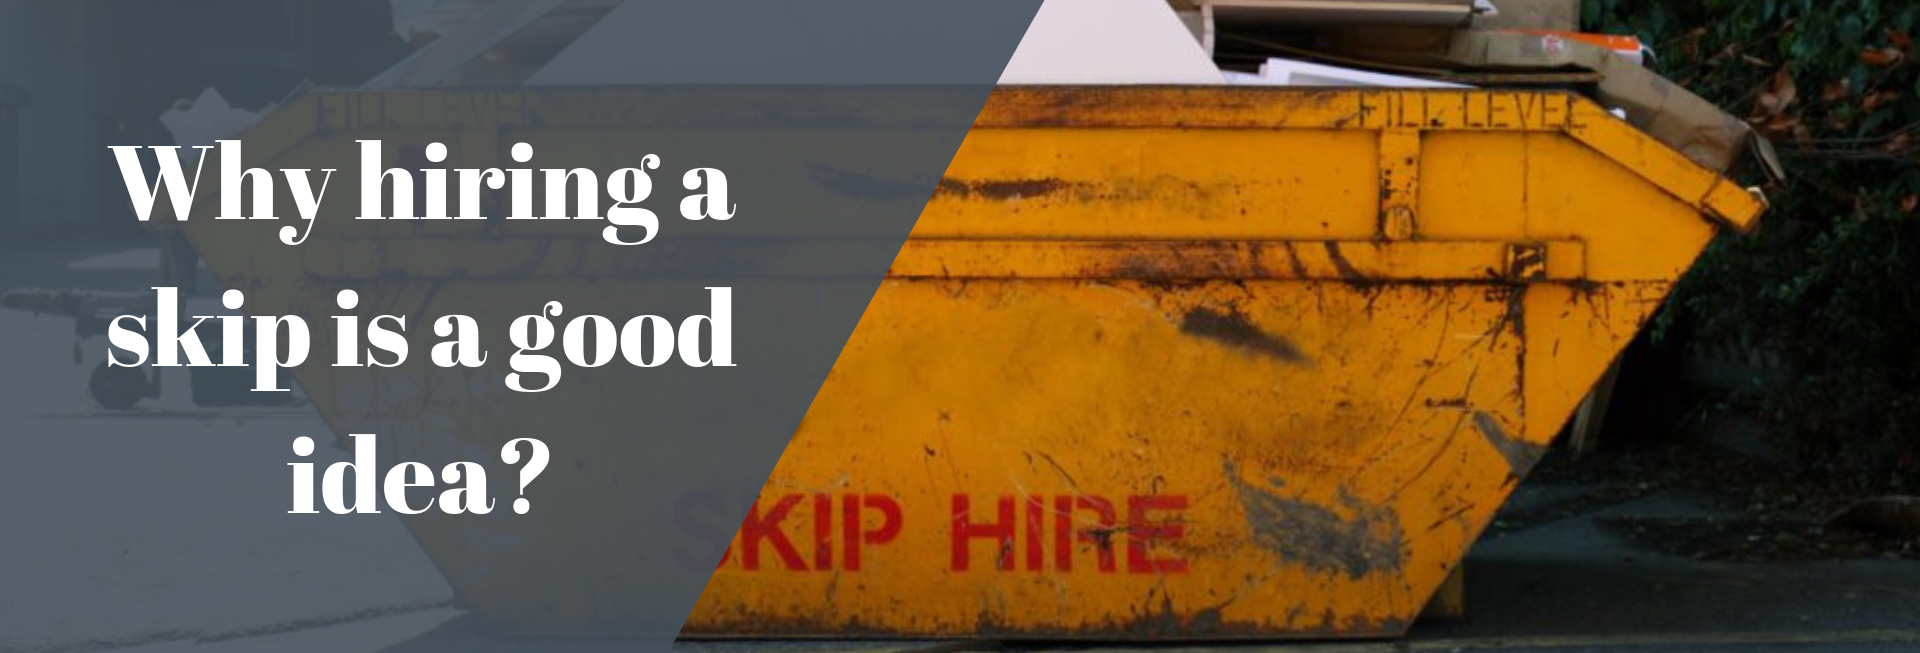 Why hiring a skip is a good idea_